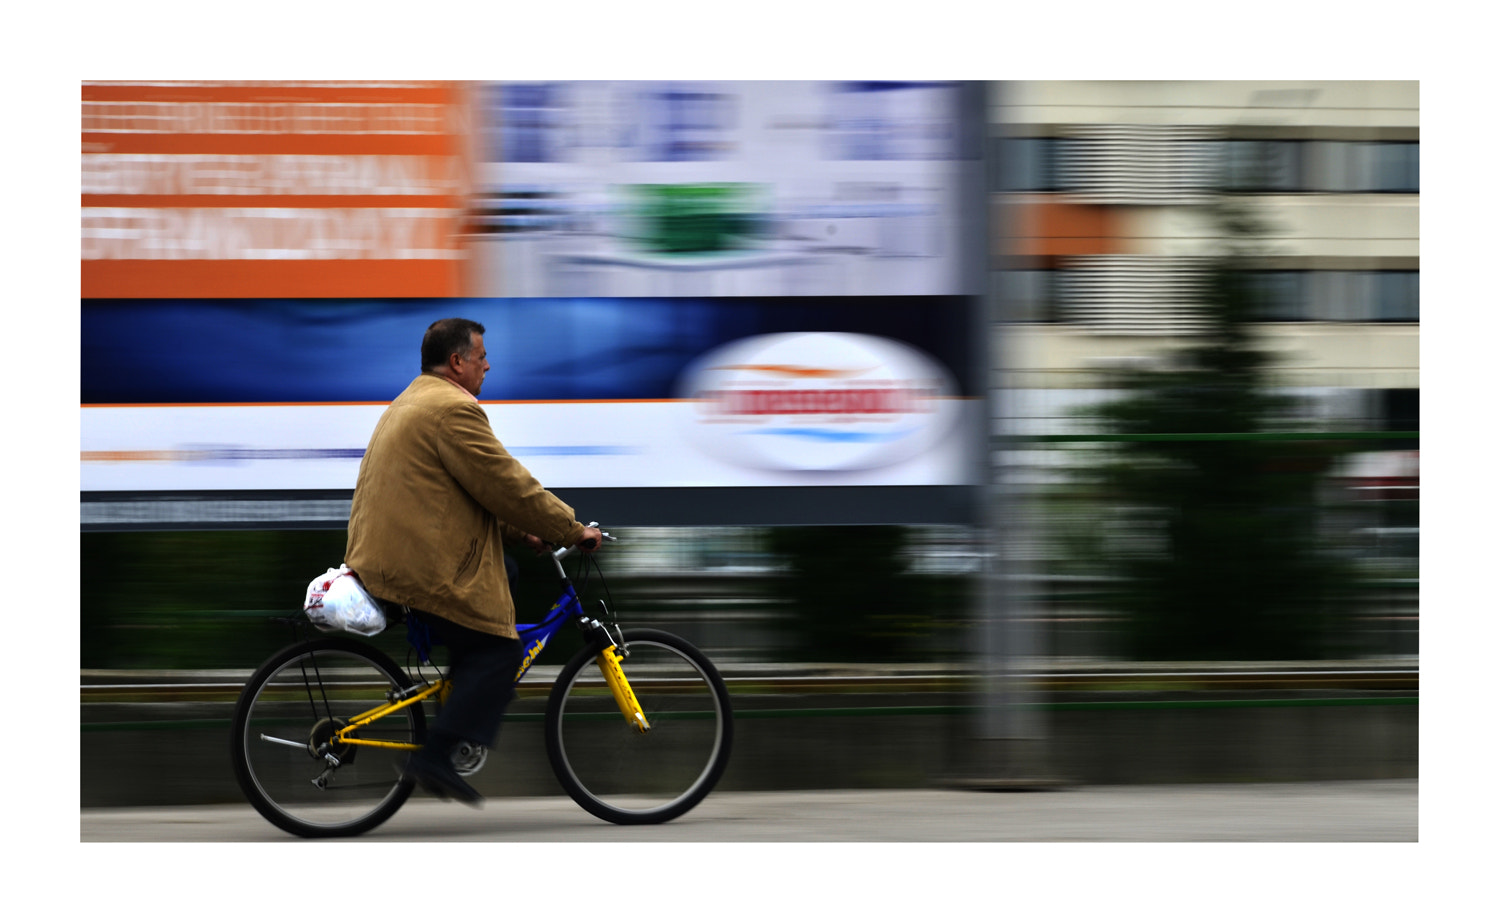 Photograph bicycle by Engin  Altundağ on 500px